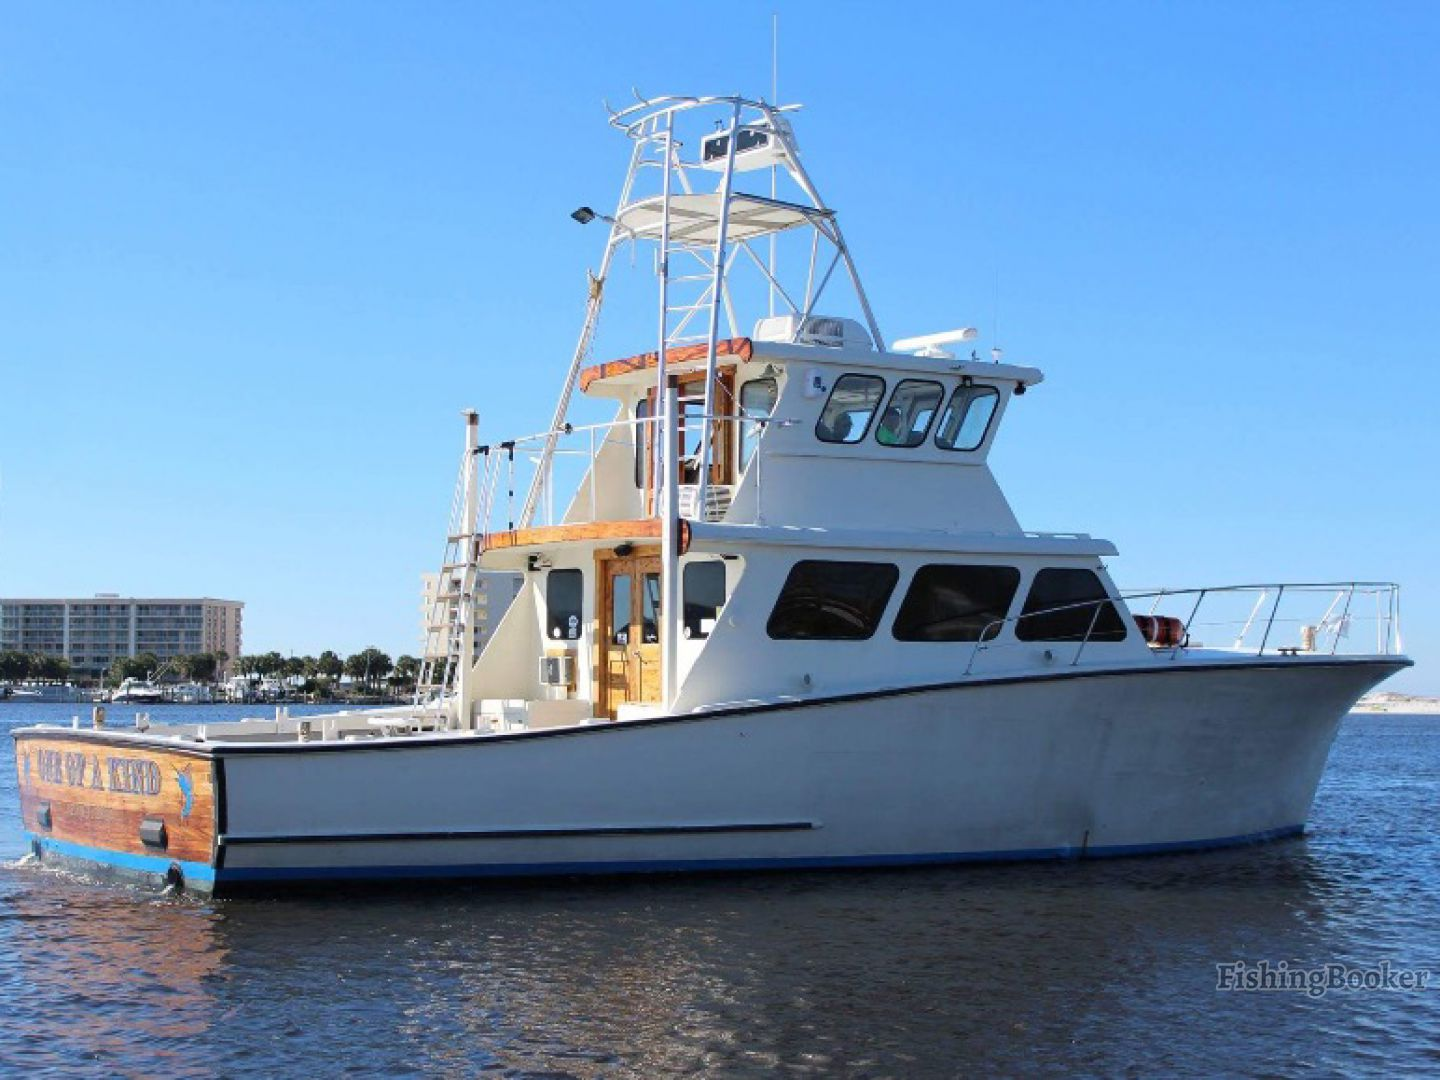 One of a kind charter fishing destin florida for Destin florida fishing charters